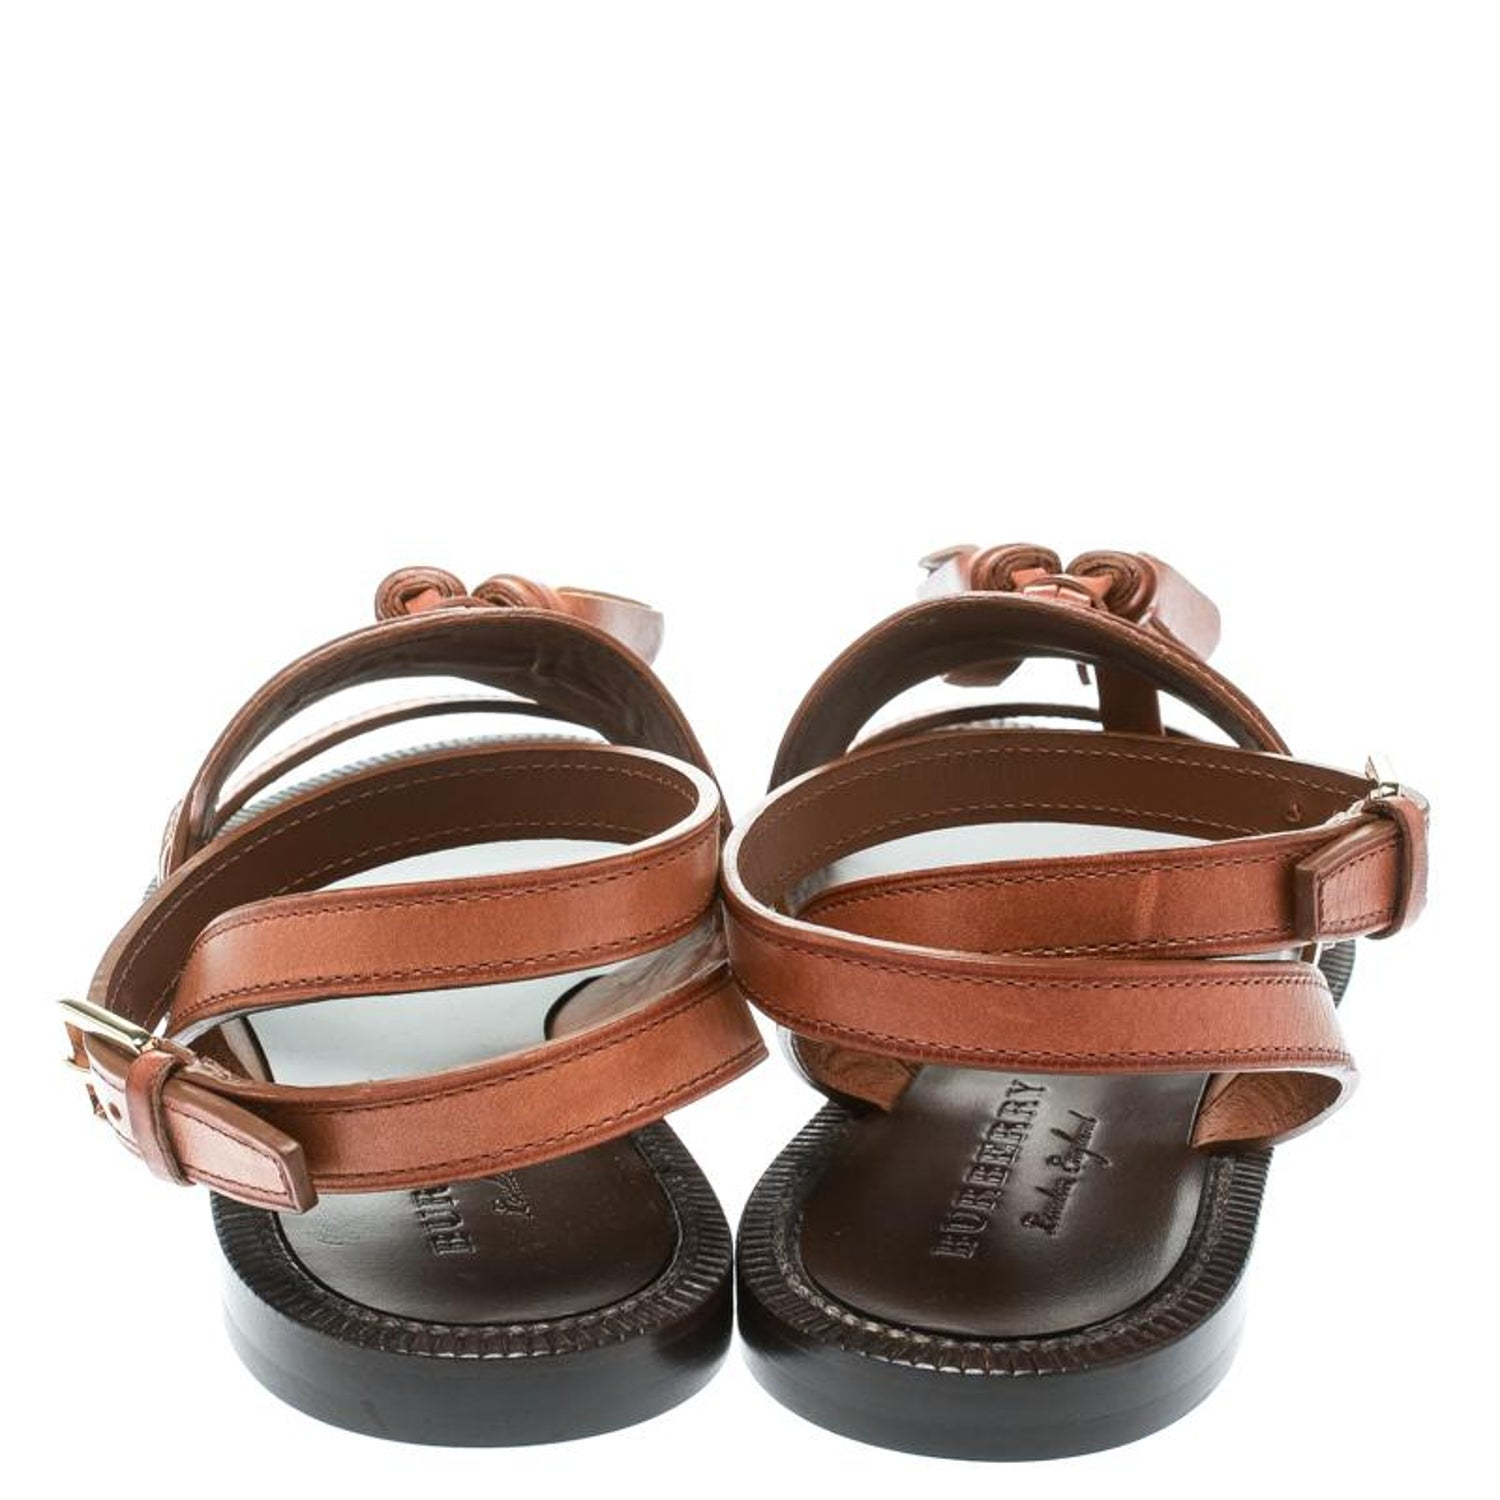 98e4149dd388 Burberry Cognac Brown Leather Bethany Tassel Detail Flat Sandals Size 37  For Sale at 1stdibs